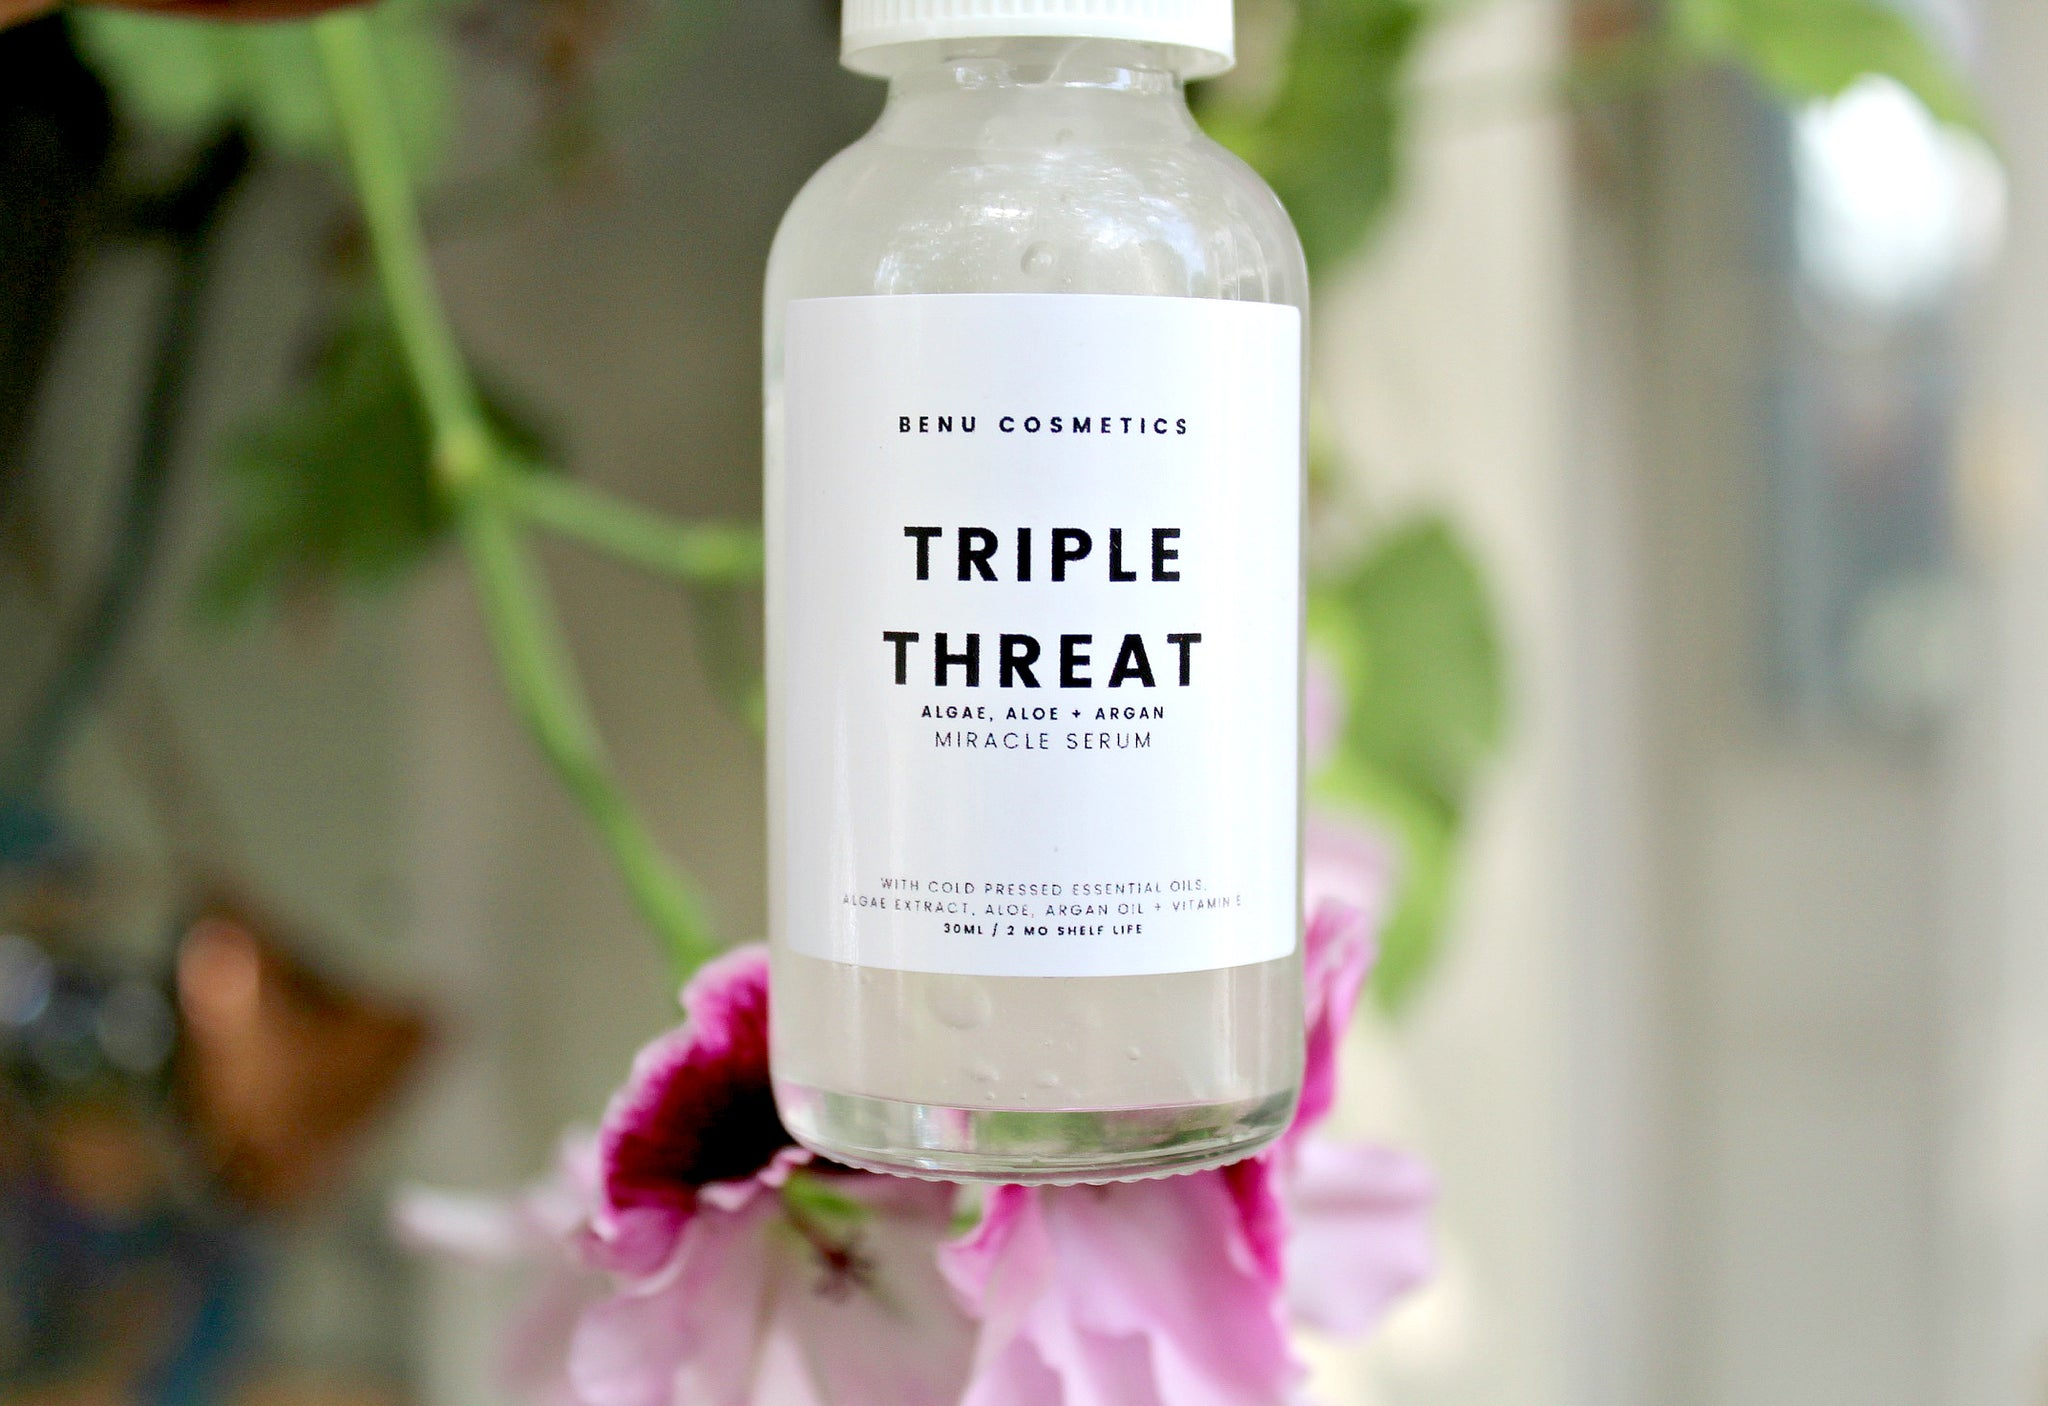 Triple Threat Miracle Serum